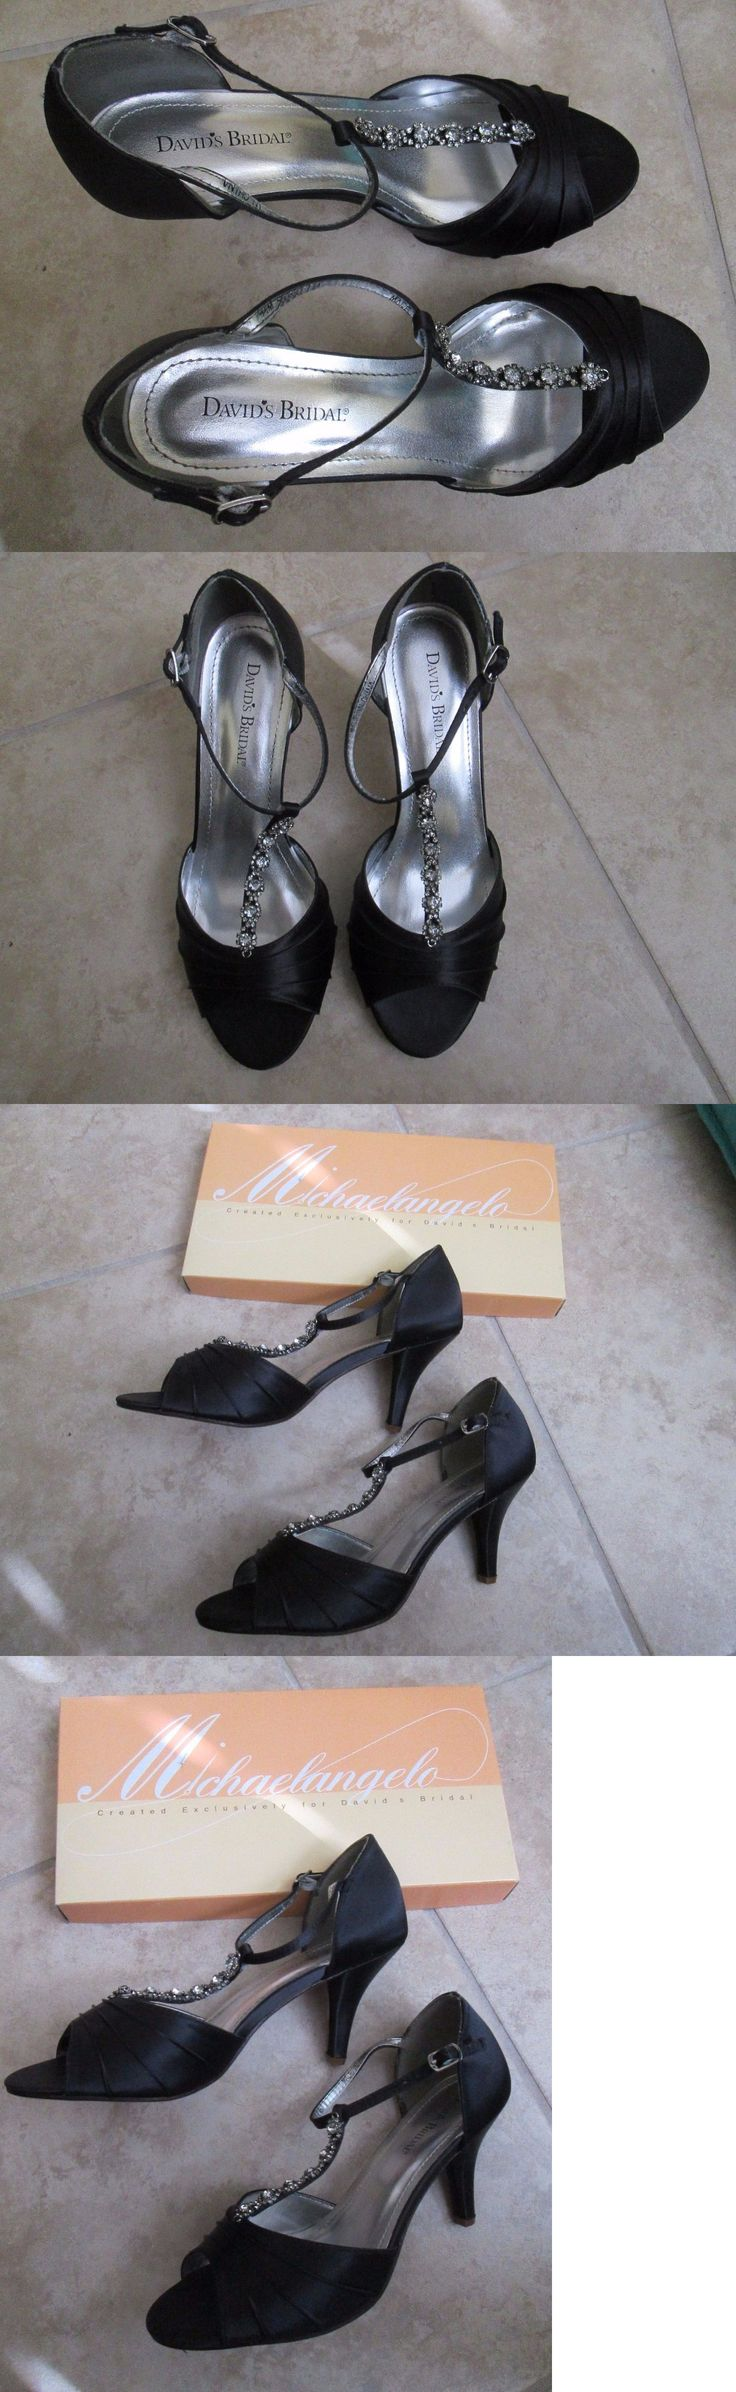 Wedding Shoes And Bridal Shoes: Davids Bridal Tia Dyed Black Prom Bridesmaid Shoes 9.5 Open Toe 3.5 High Heel BUY IT NOW ONLY: $39.99